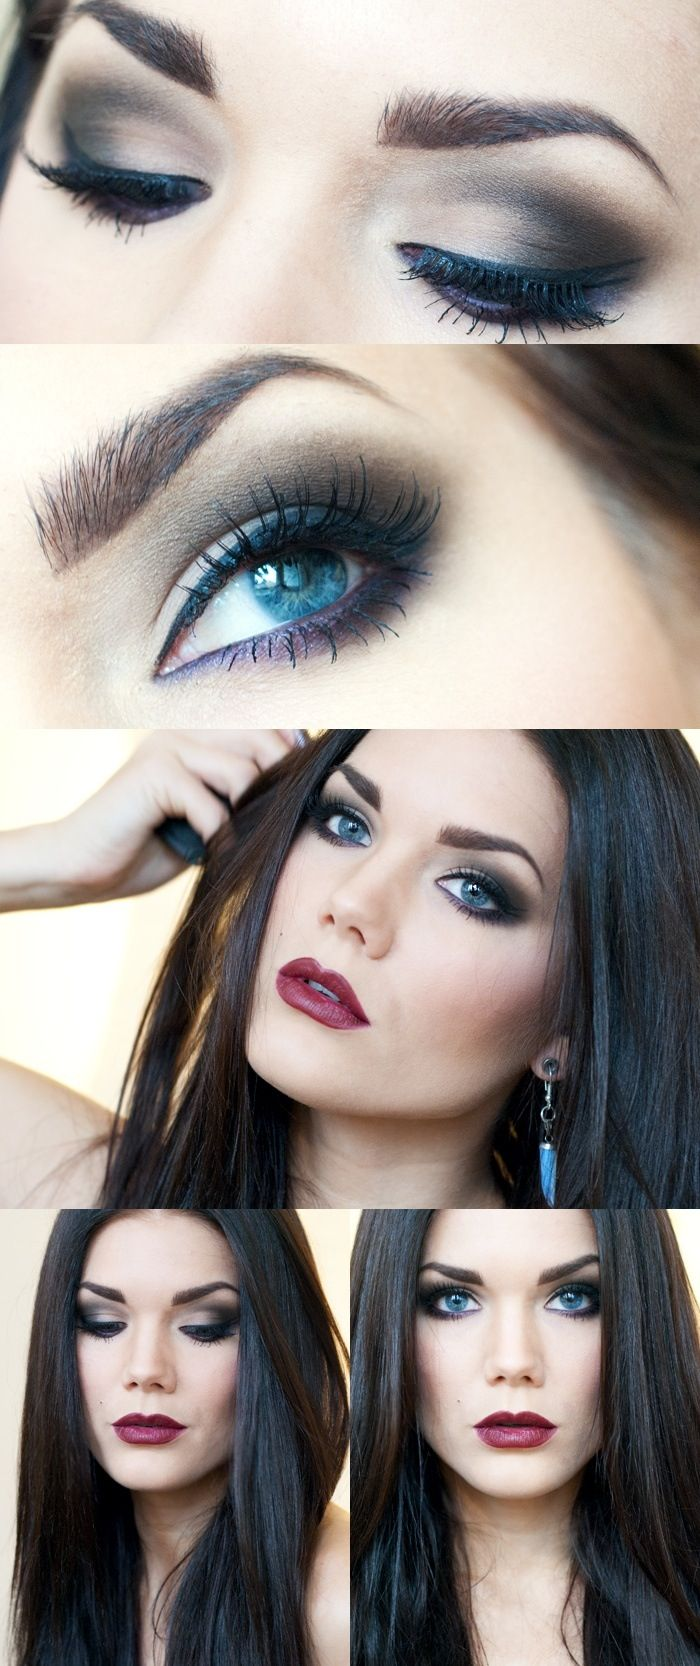 Love this makeup and hair